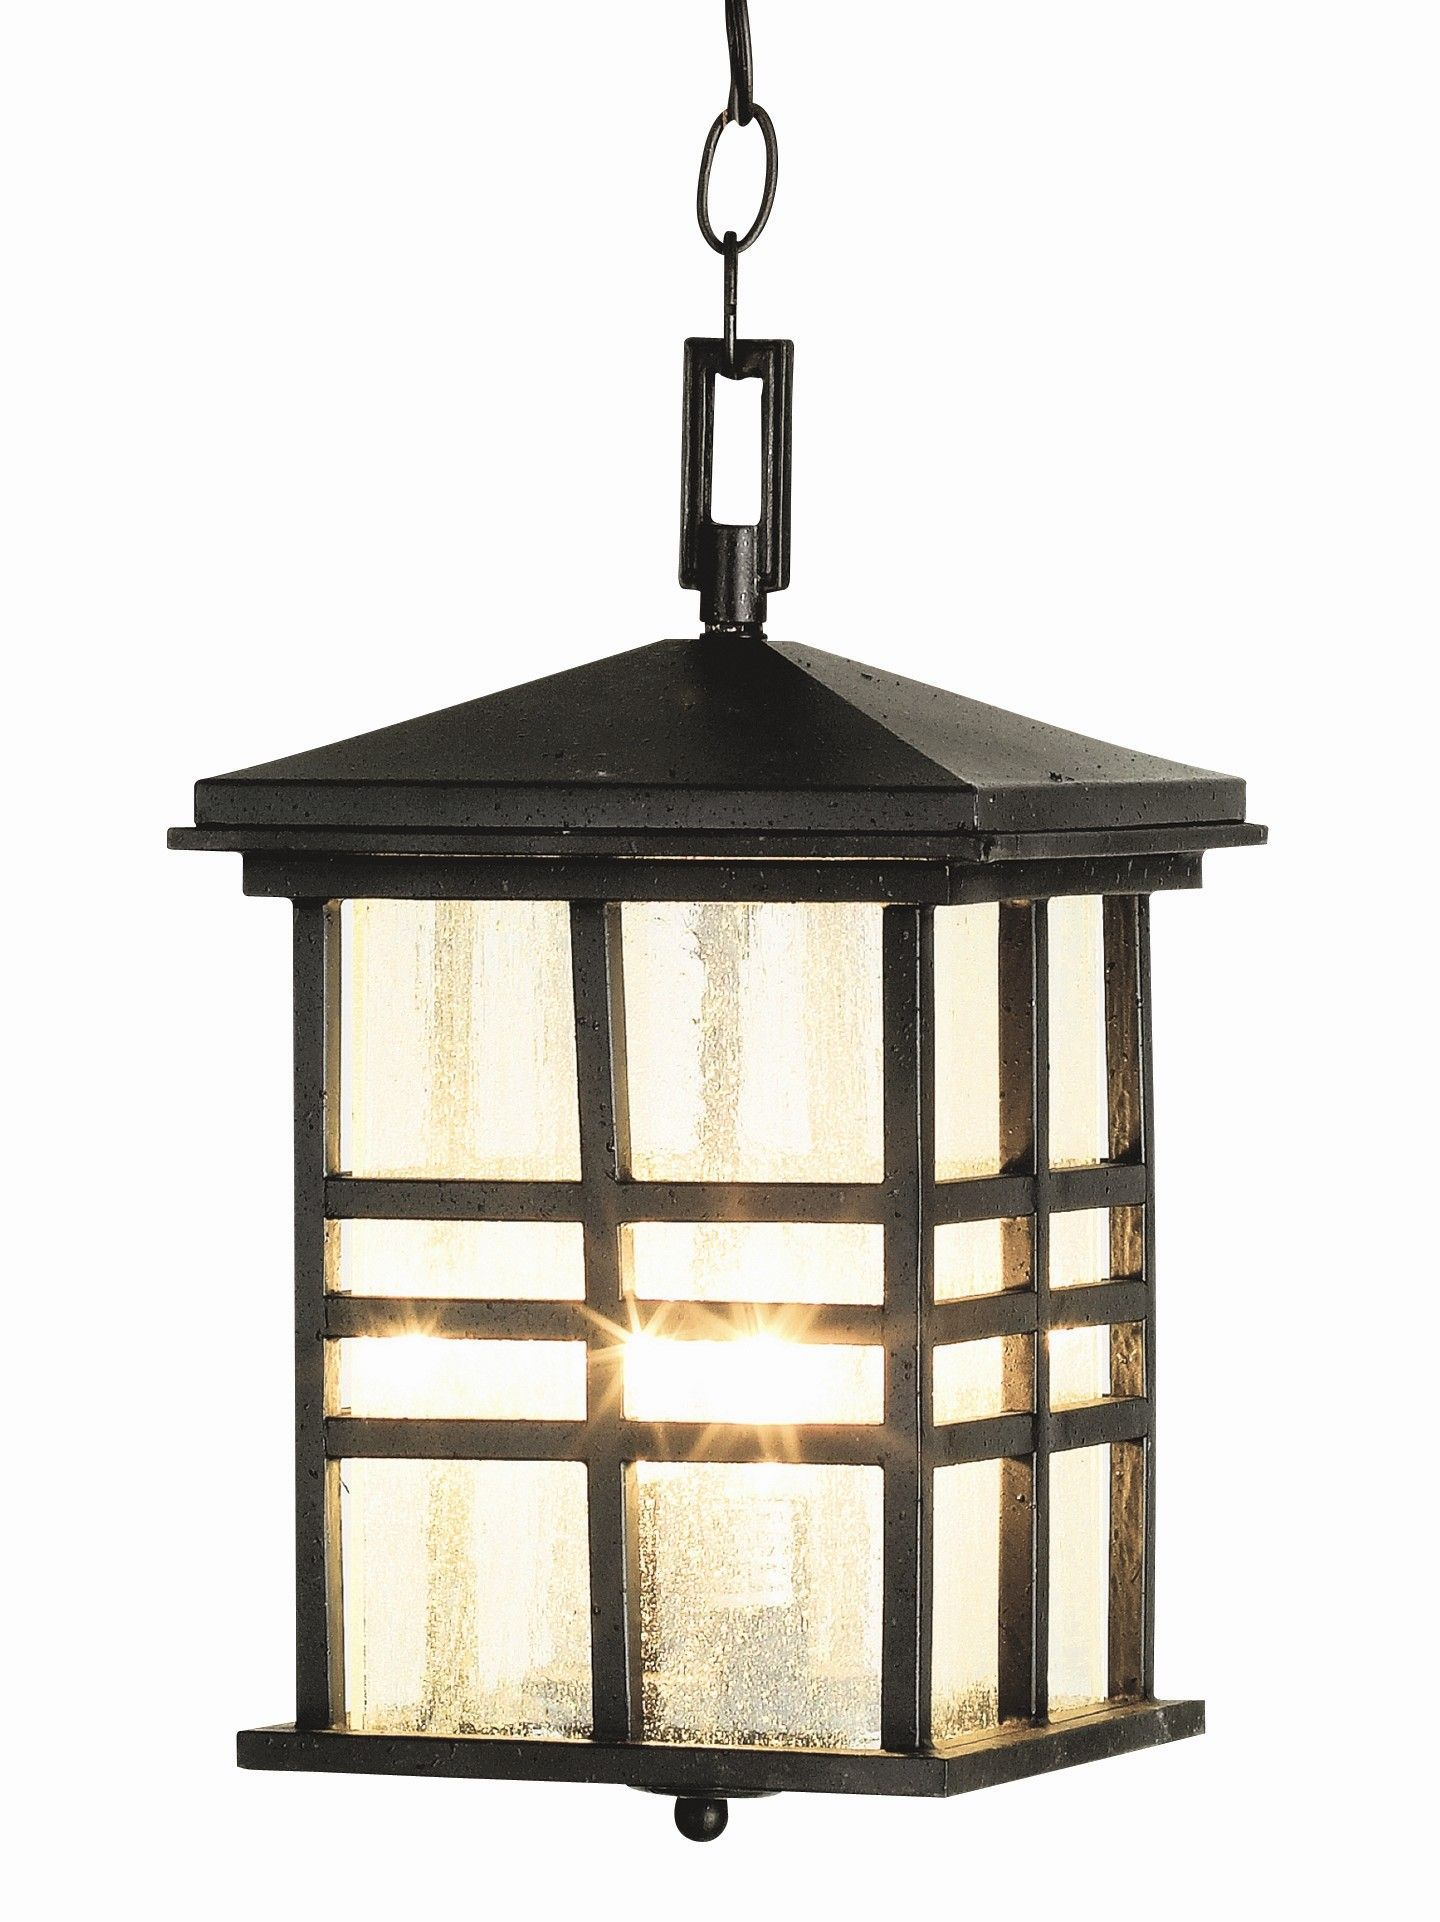 Trans Globe 4638 Rustic Craftsman Outdoor Pendant Rustic Craftsman Exterior  PendantA Rustic Mission Style Outdoor Hanging Lantern, Perfect For